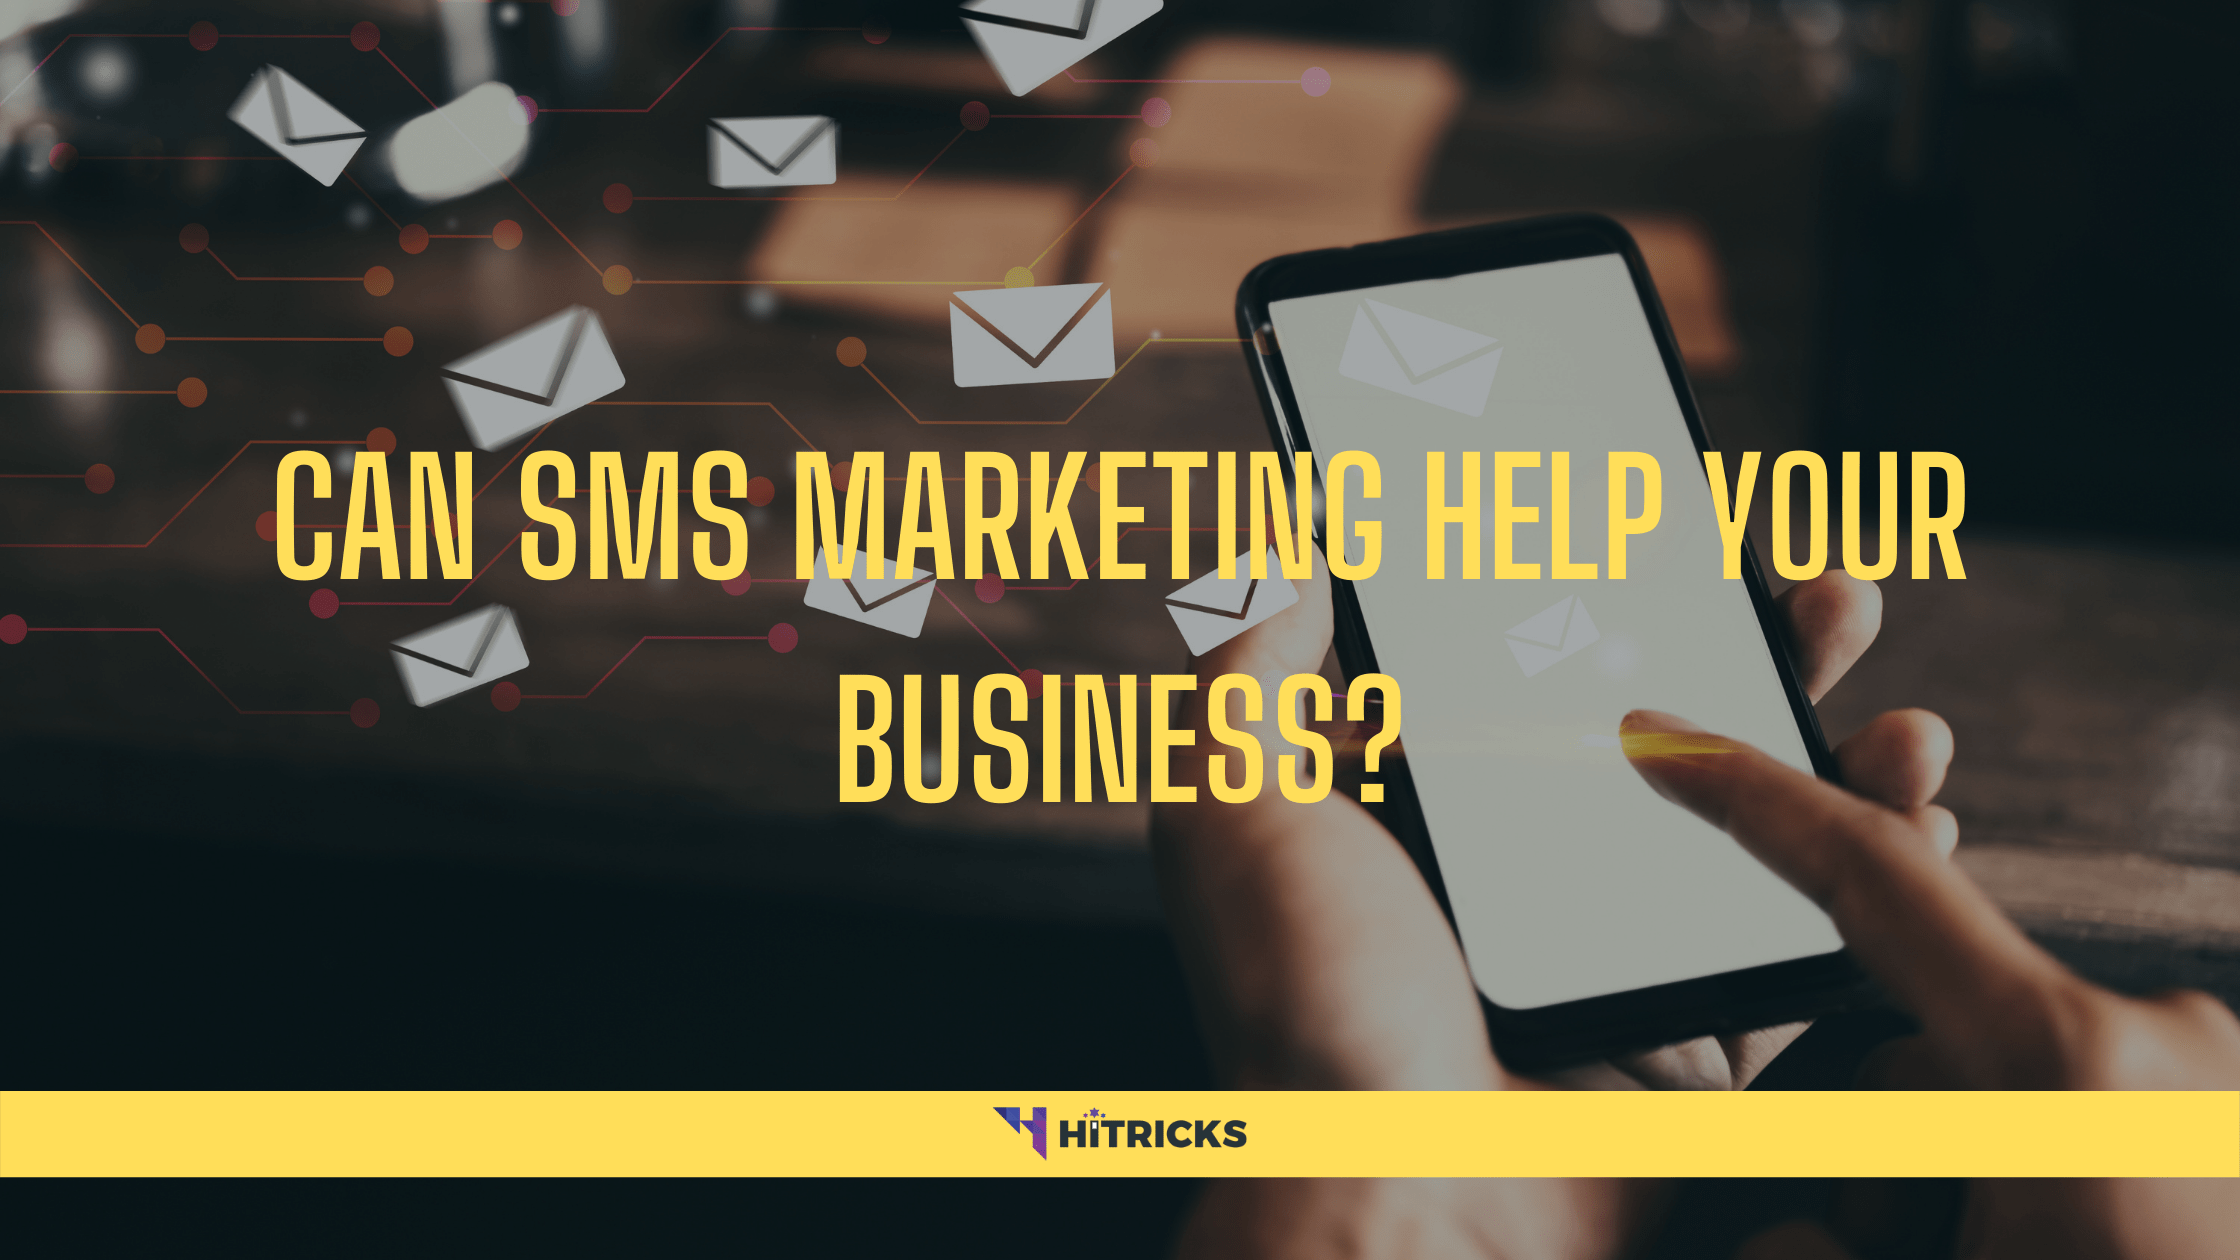 Can SMS Marketing Help Your Business?